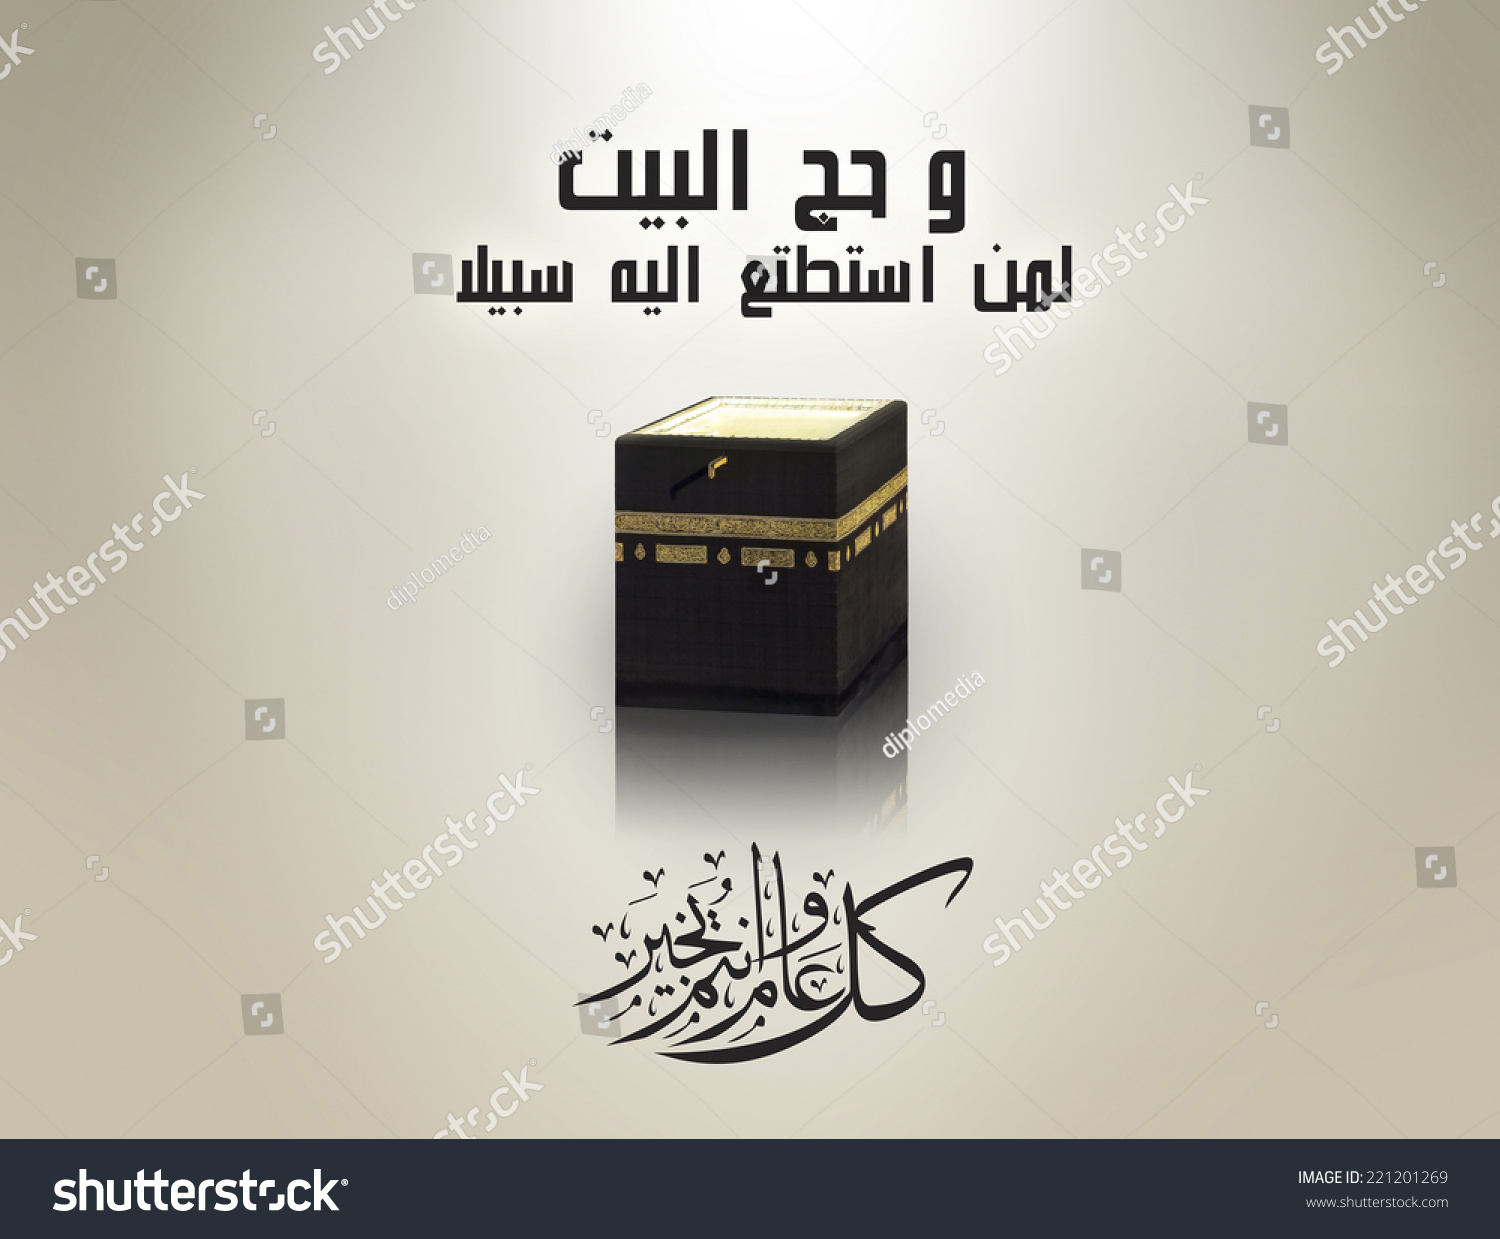 Adha greeting showing kaaba mecca happy stock photo 221201269 adha greeting showing kaaba in mecca with happy eid hajj festive statment in arabic kristyandbryce Image collections